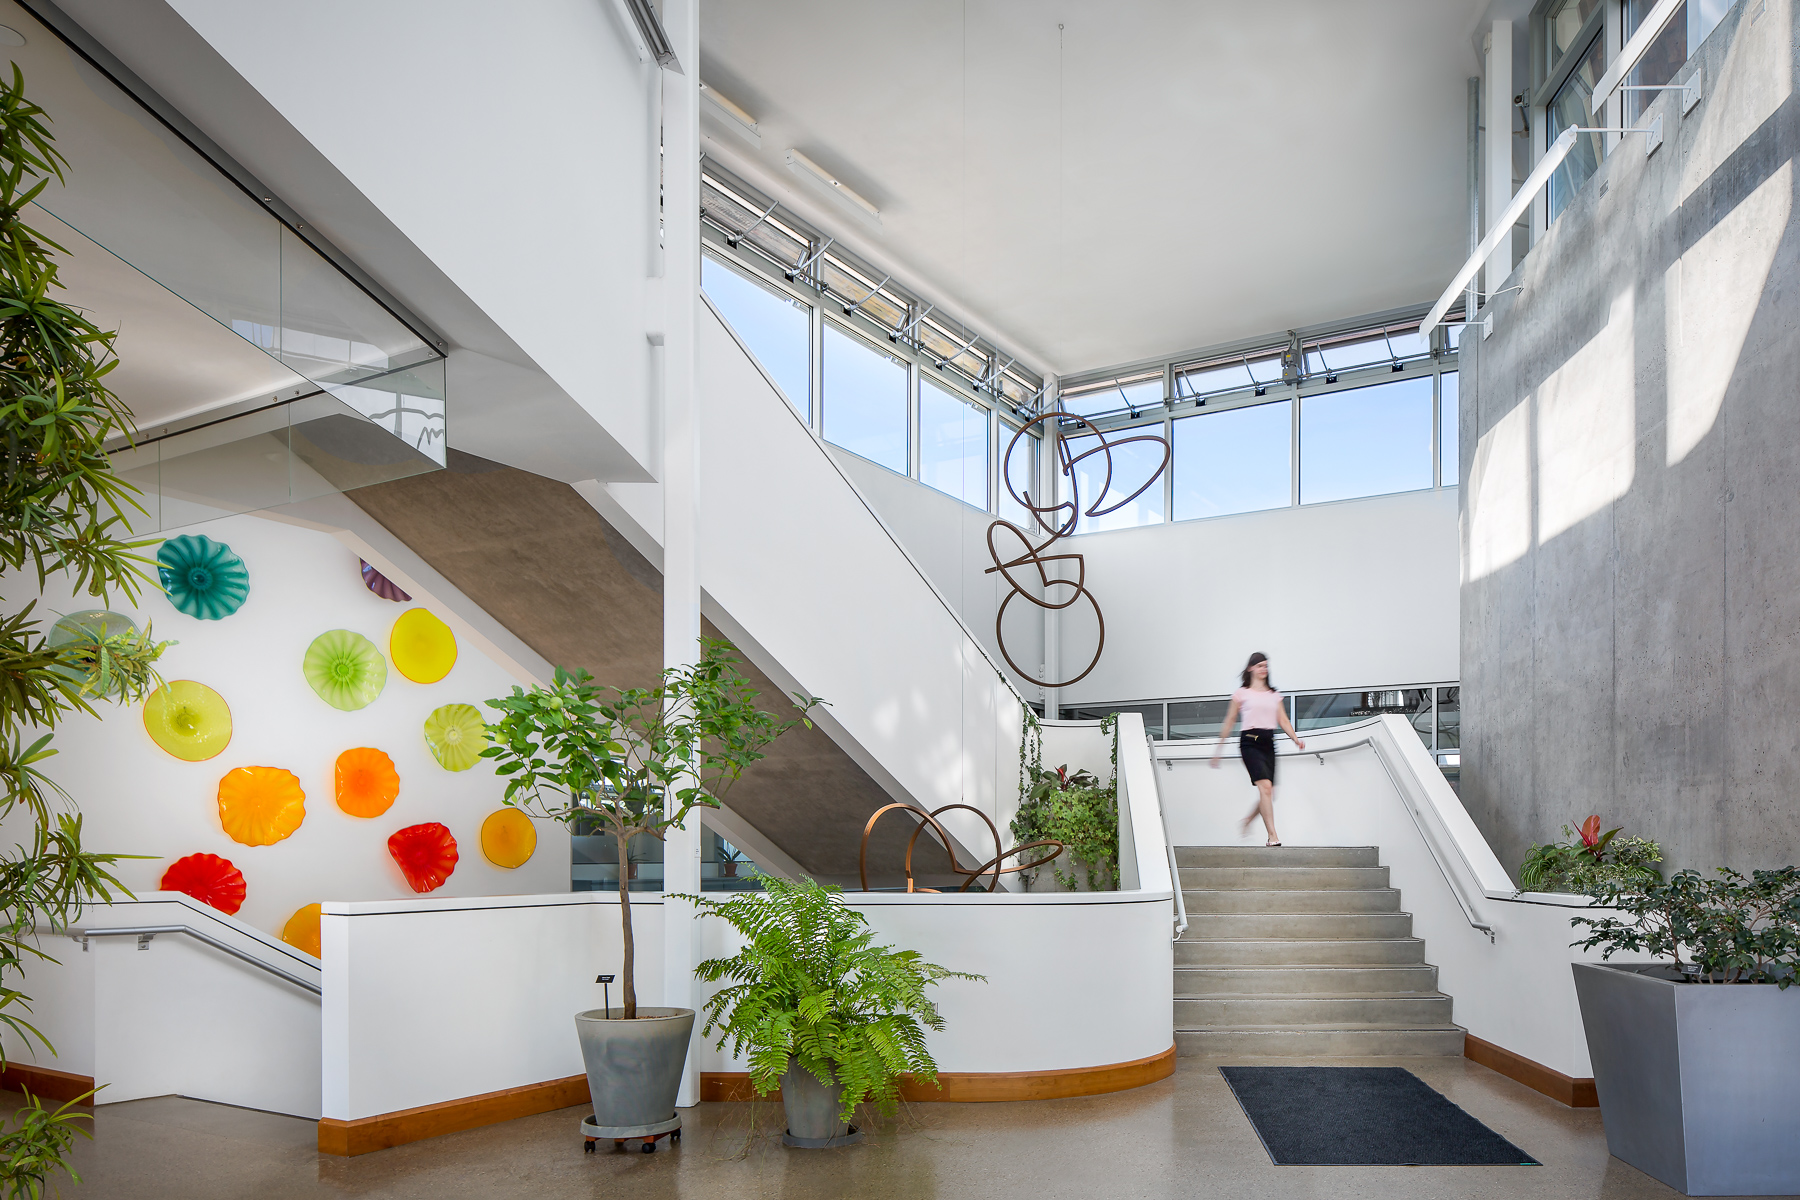 Staircase and Artwork with Model